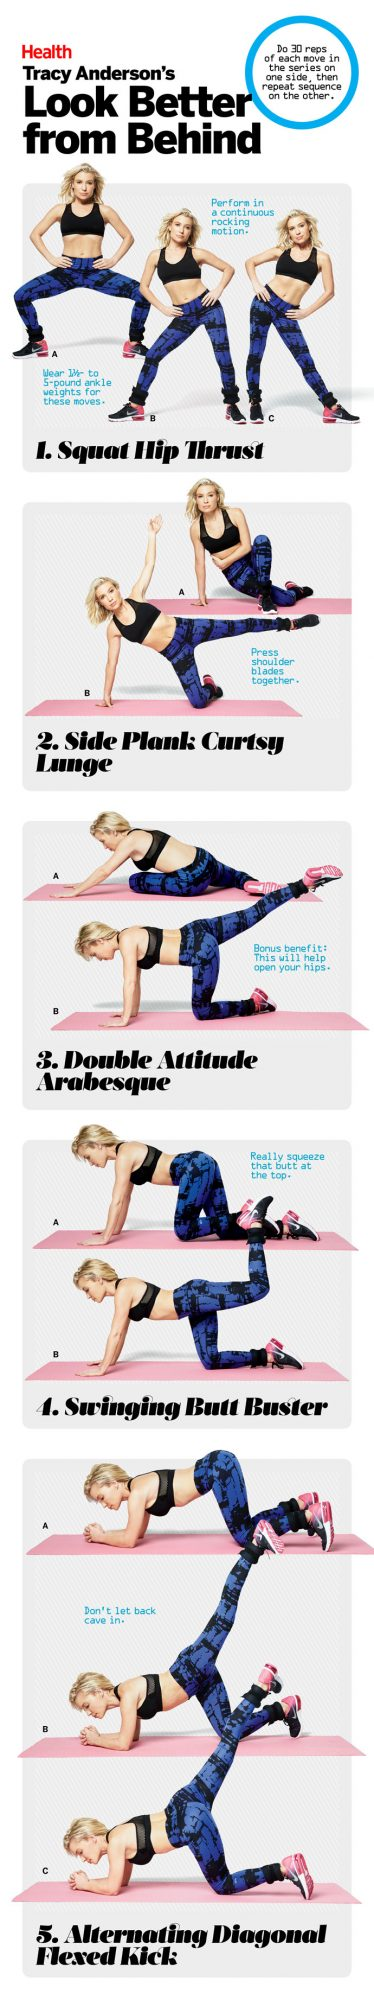 tracy-anderson-pinterest-workout-backside